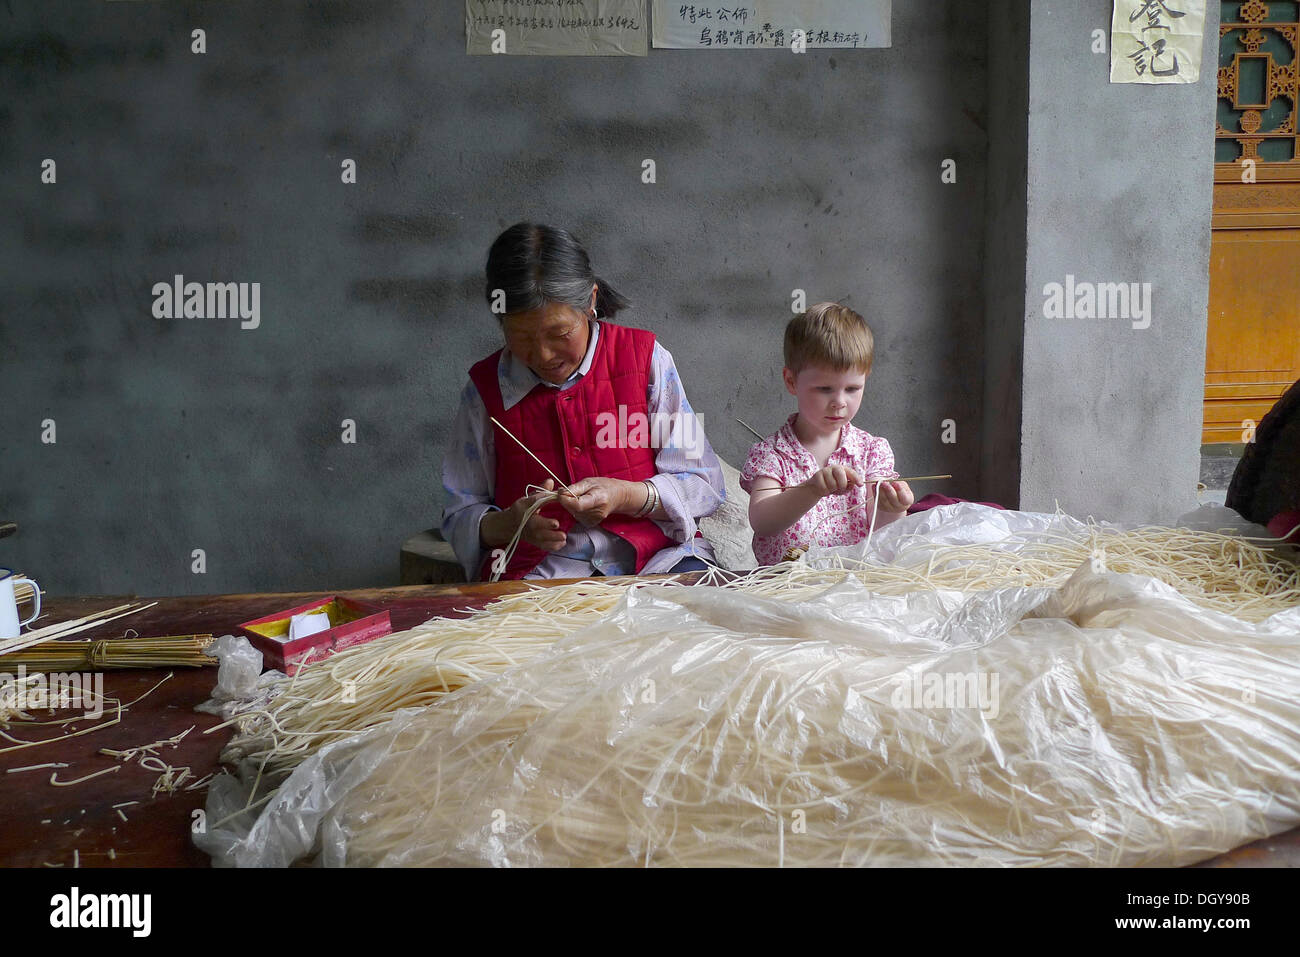 Encounters in China, young European girl helping on old Chinese woman making incense sticks, Moxi, Hailuogou, Sichuan, China Stock Photo